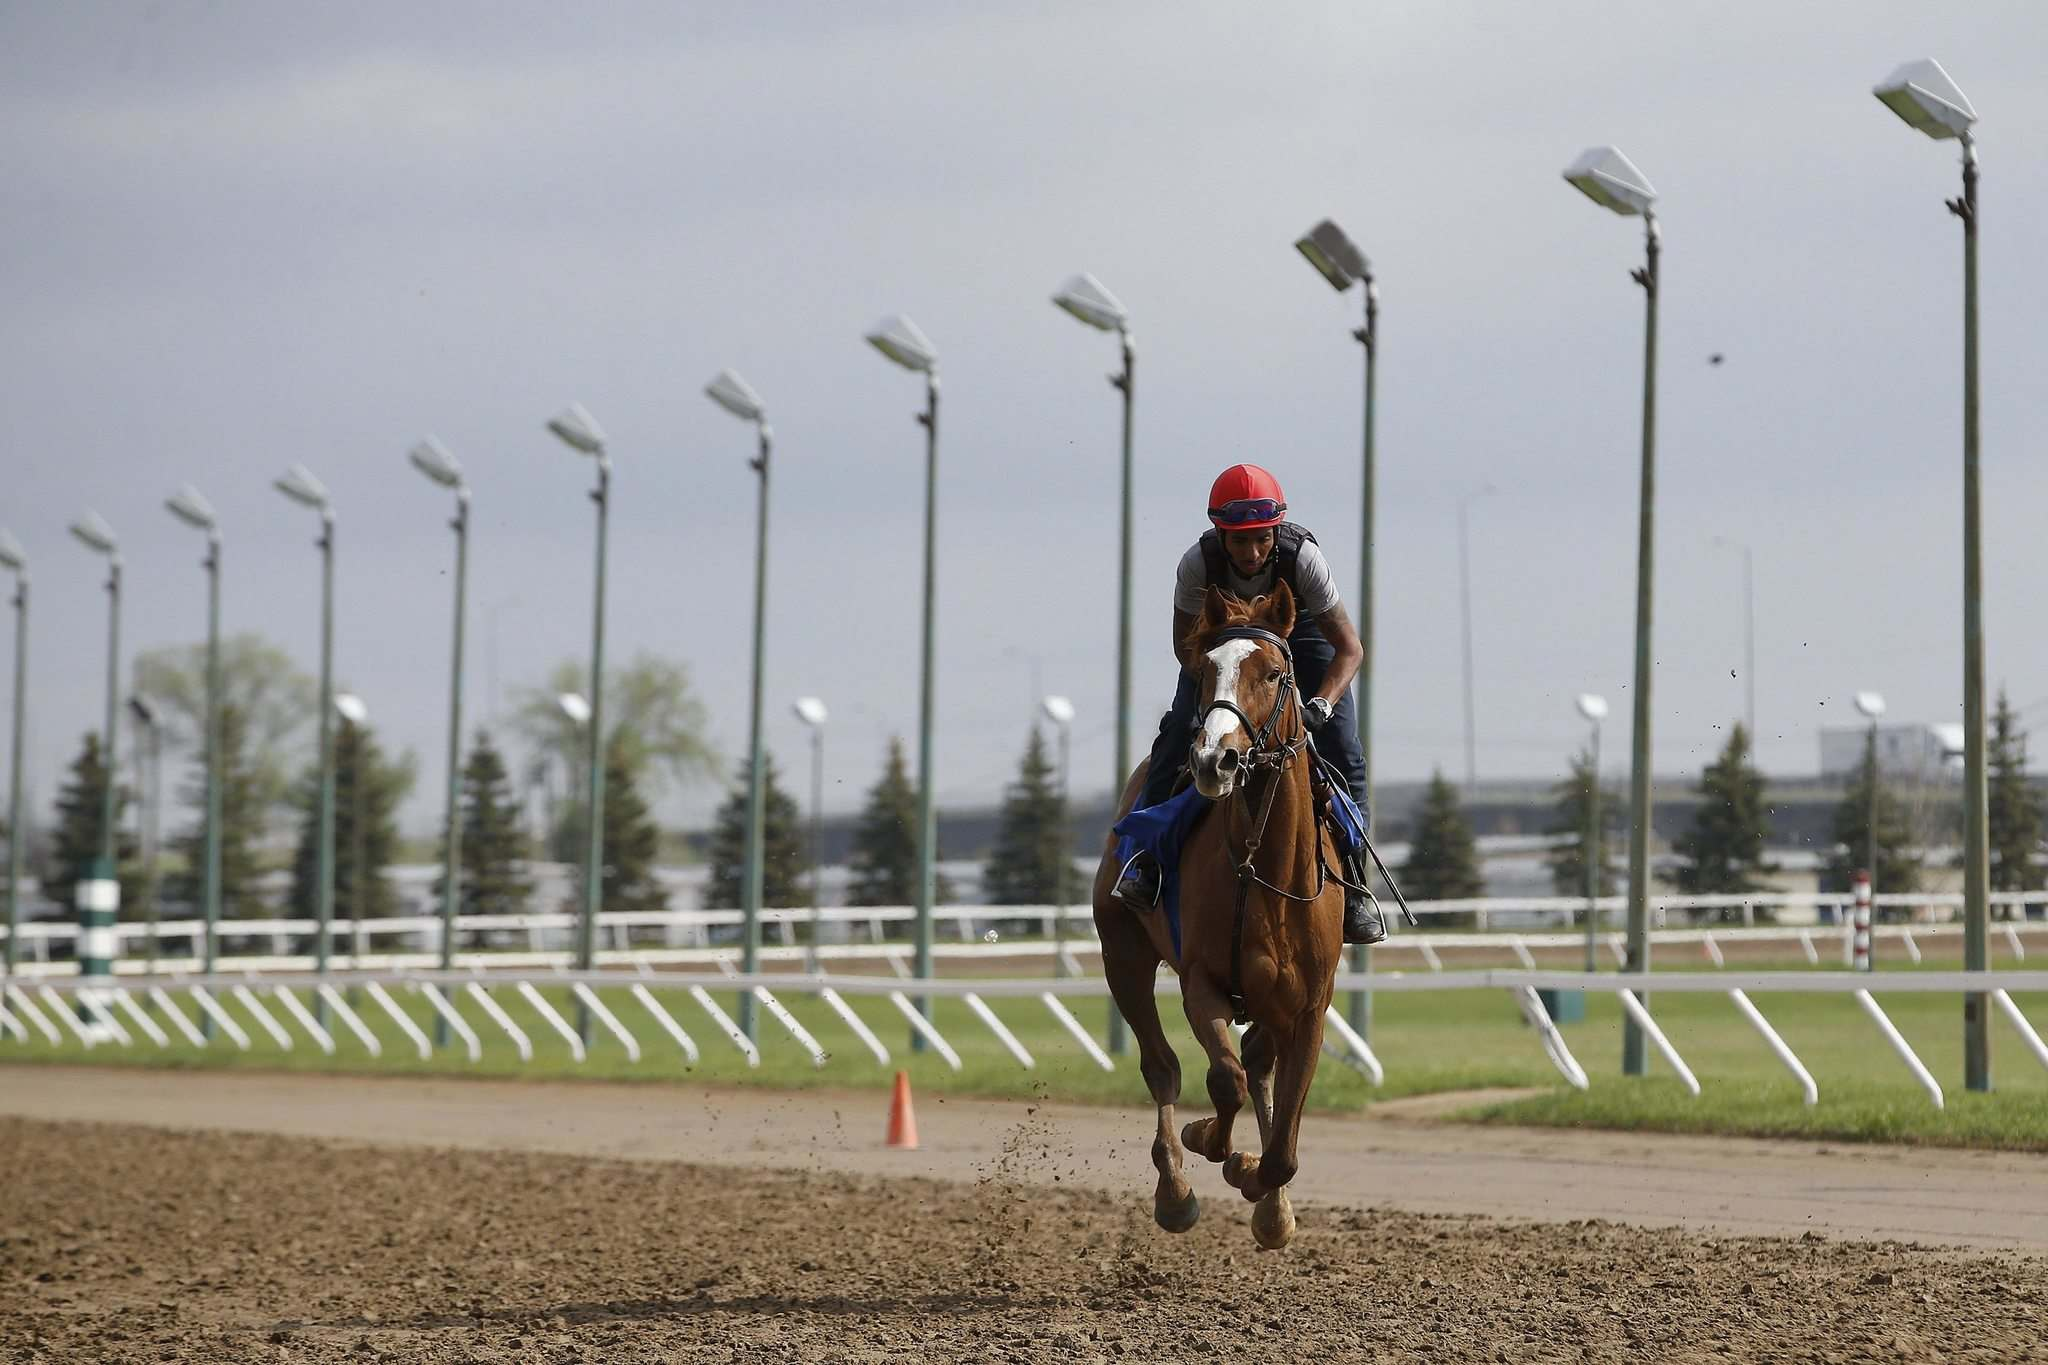 Jockey Richard Mangalee rides the track at Assiniboia Downs Sunday. He said the silence at the Downs 'might be a little better for the horses.' (John Woods / Winnipeg Free Press)</p>